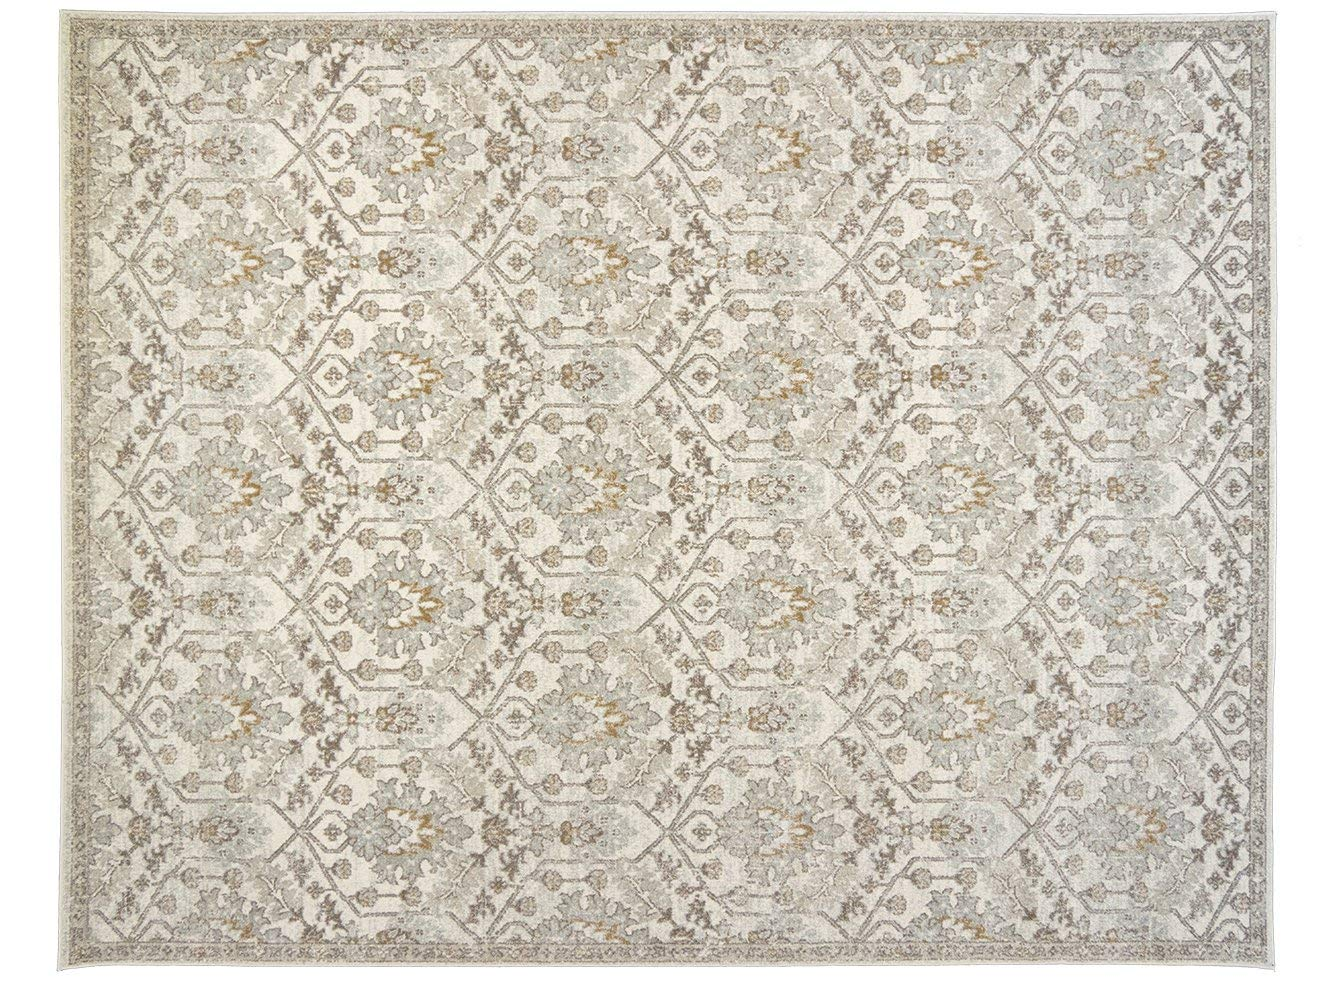 Buy Sultan Medallion Ivory Blue Oriental Area Rug 2x4 23